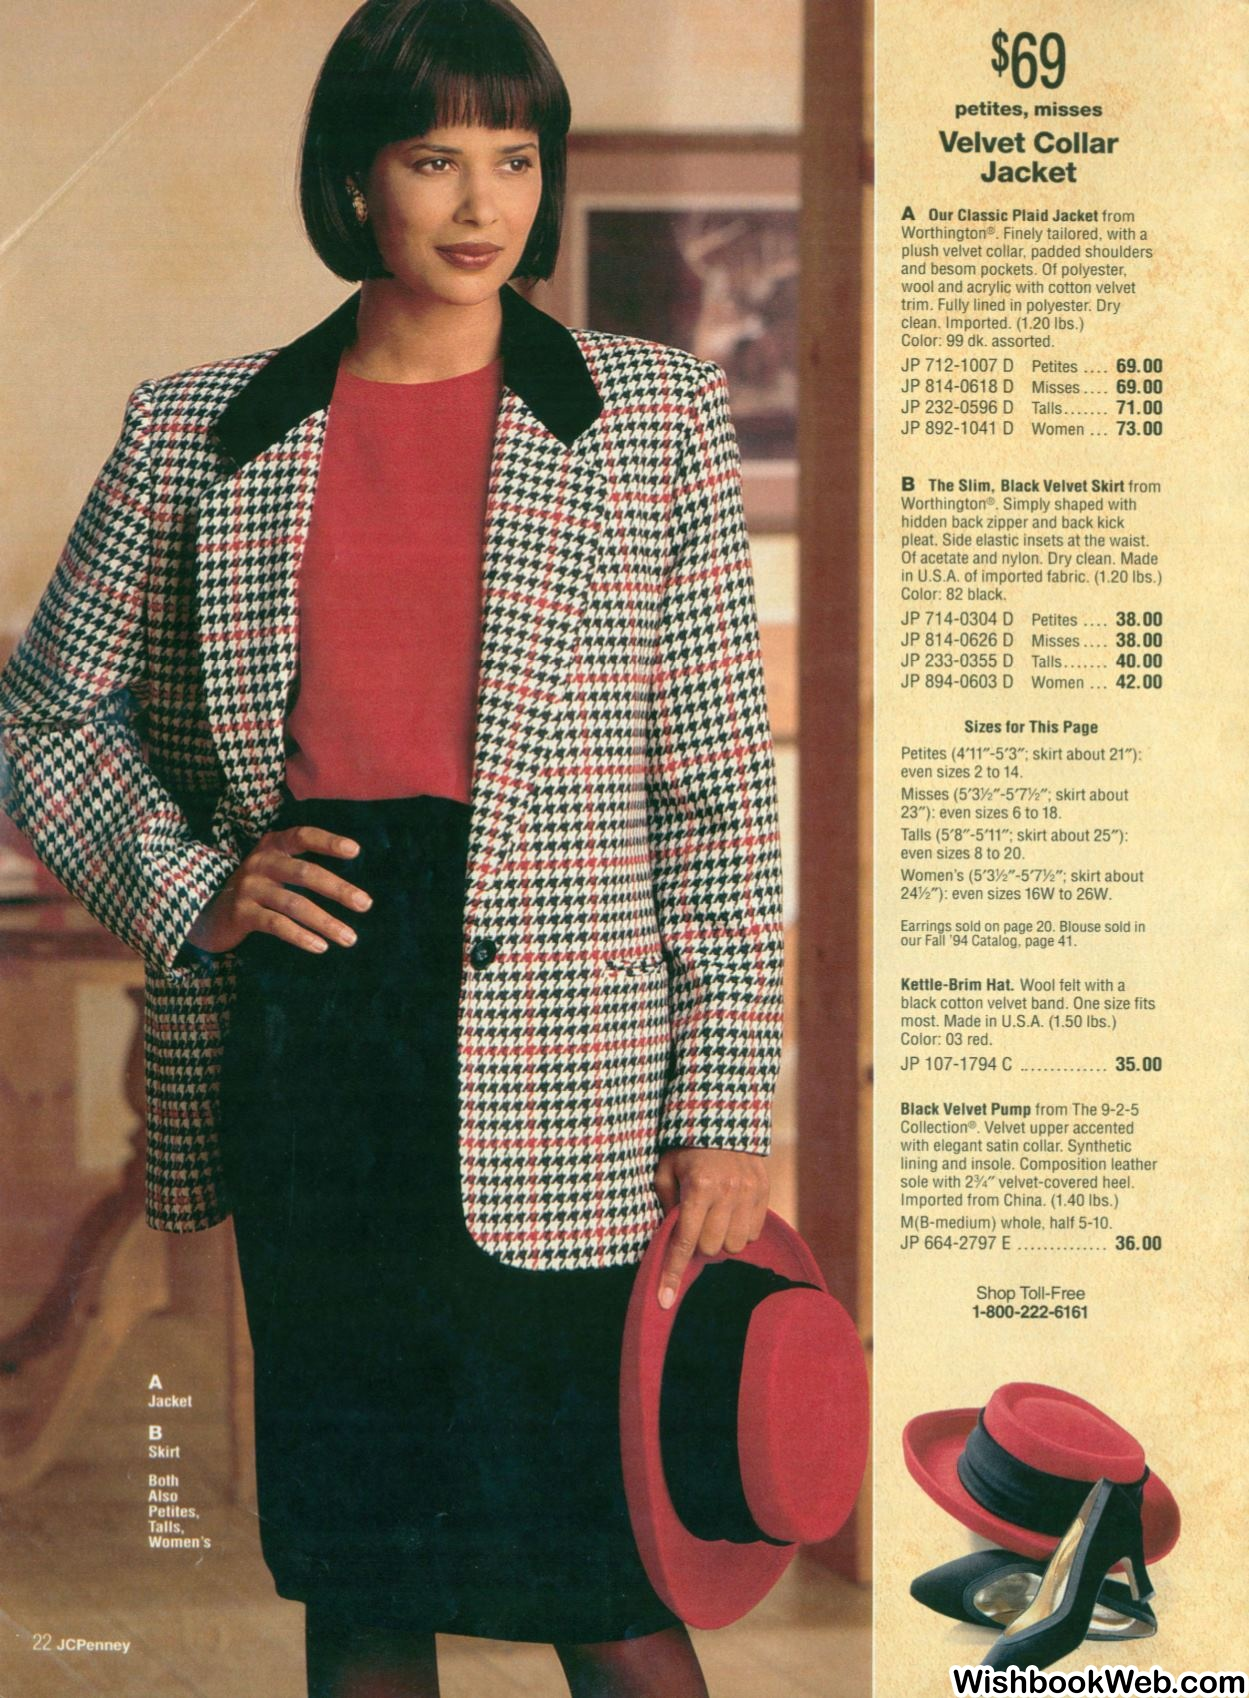 25 Pages Of The 1994 Jc Penny Catalog That Will Make You